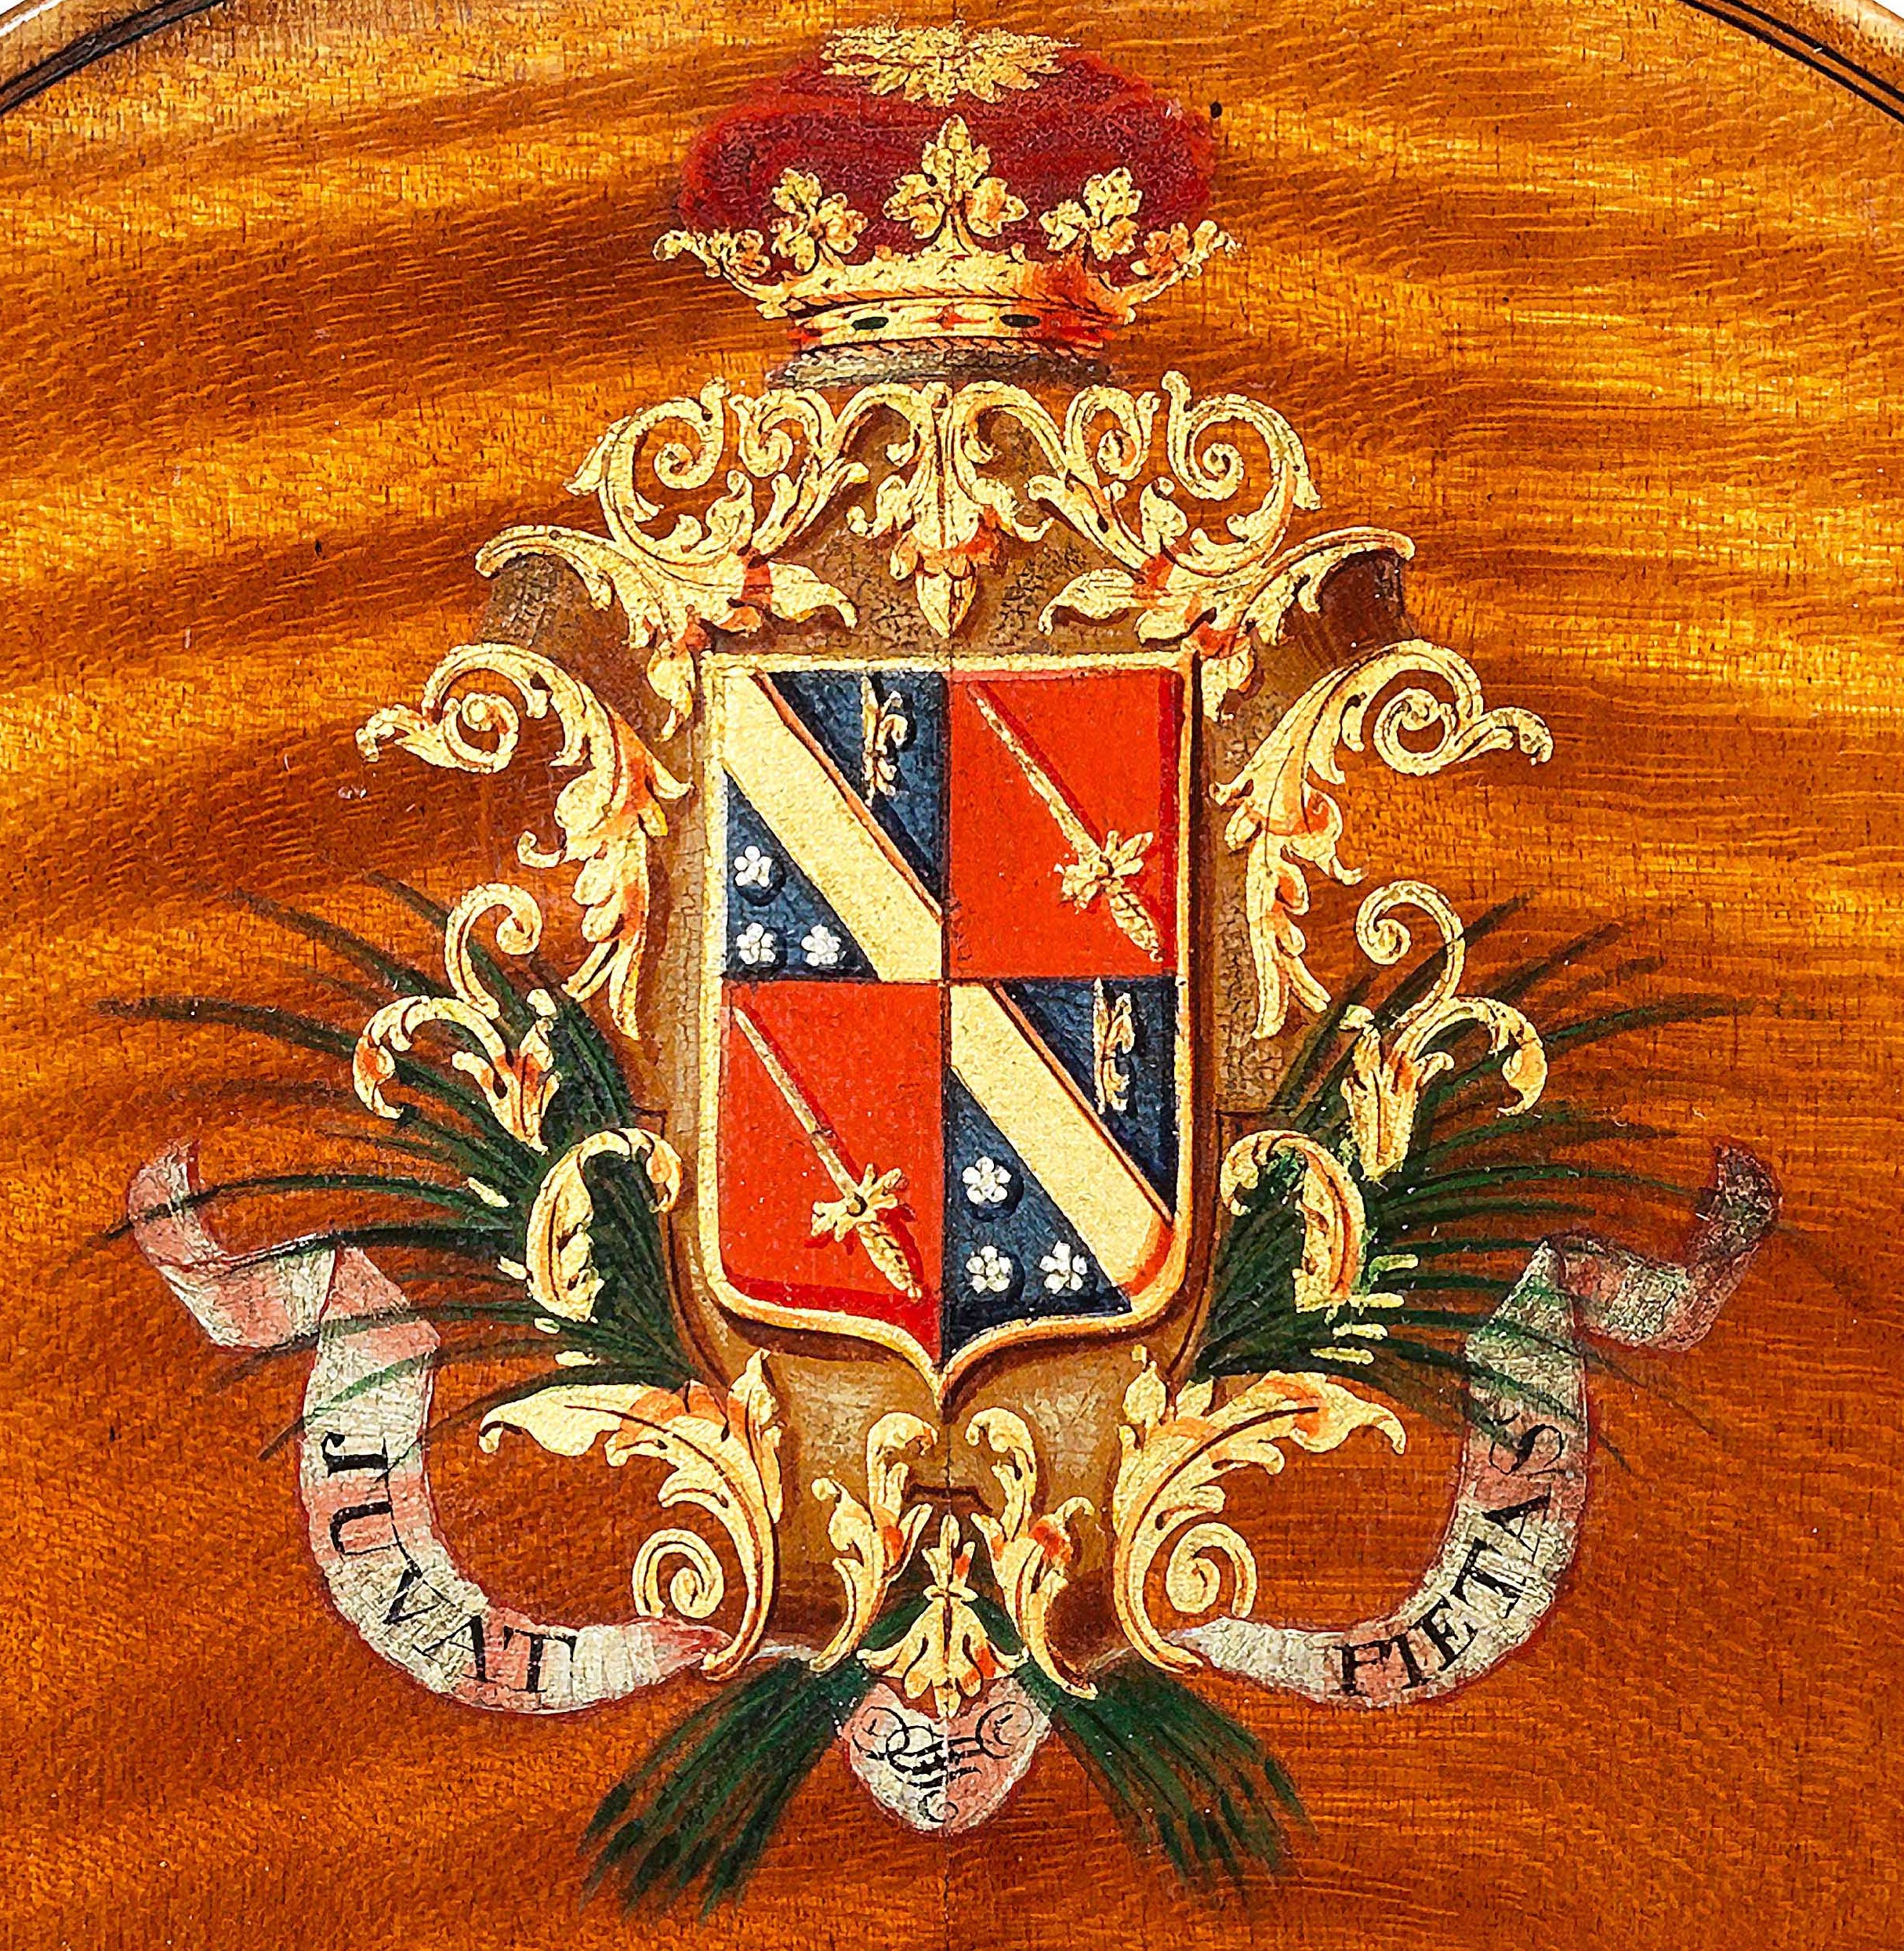 The Duke of Caraman's coat of arms on the JB Vuillaume violin in the Ingles & Hayday exhibition at Sotheby's in 2012